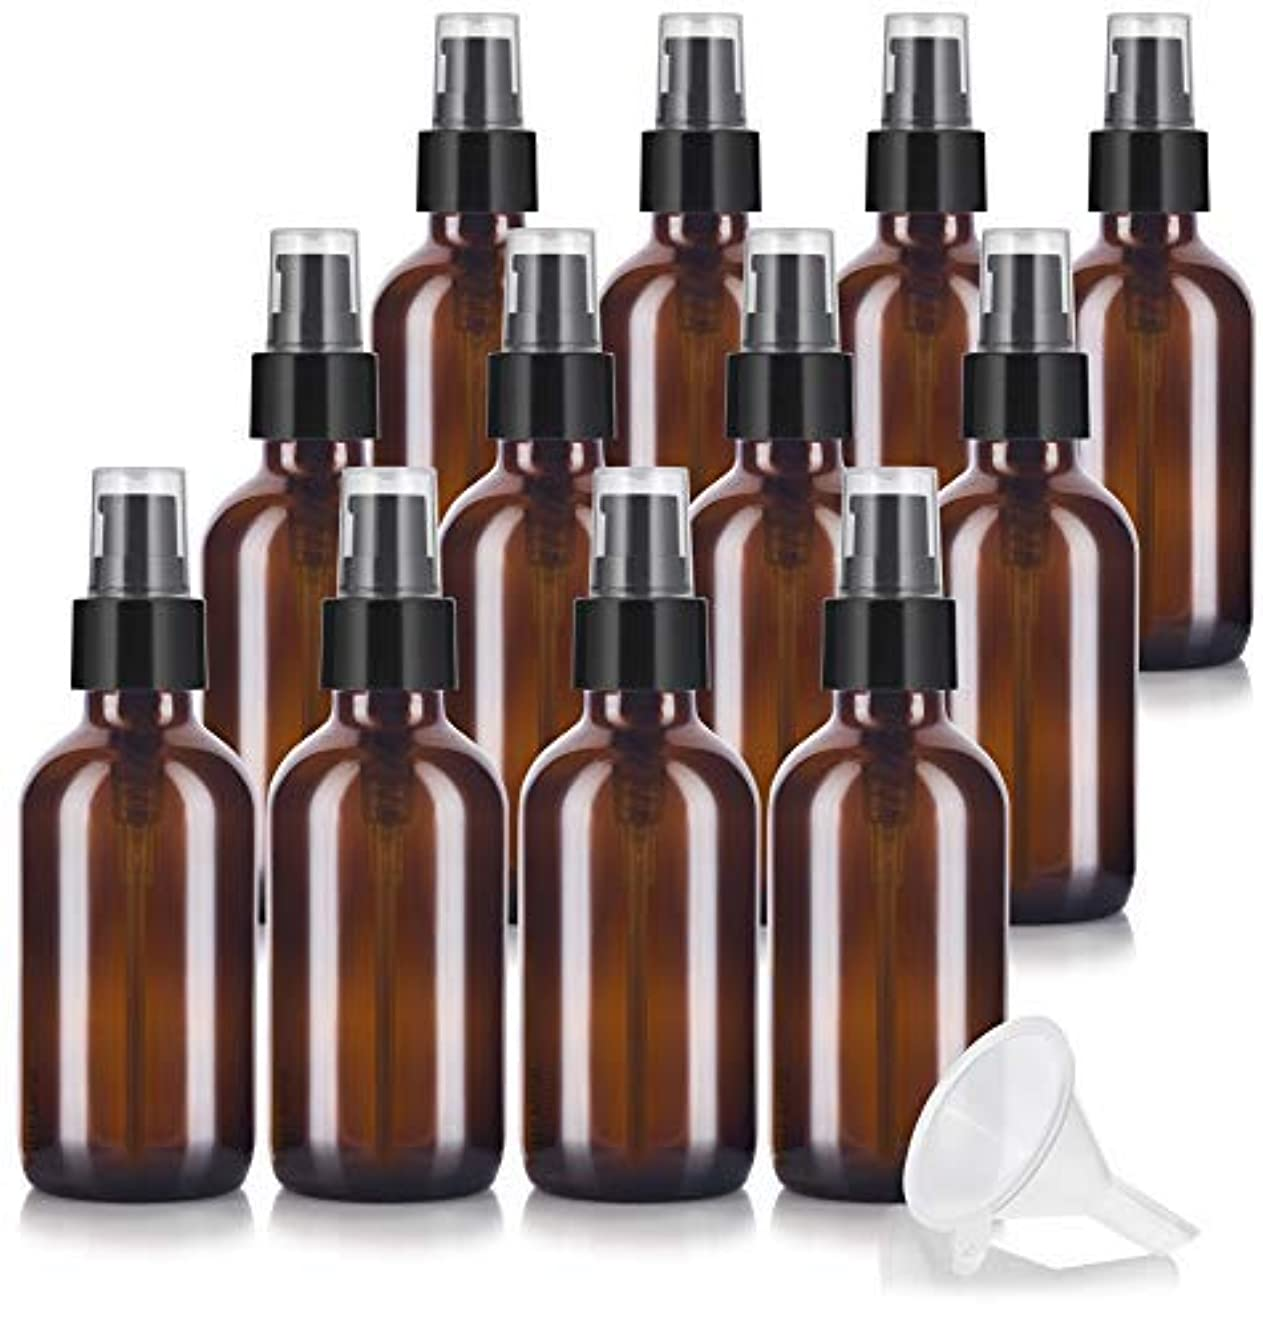 天皇輸送面倒4 oz Amber Glass Boston Round Treatment Pump Bottle (12 pack) + Funnel and Labels for essential oils, aromatherapy,food grade, bpa free [並行輸入品]